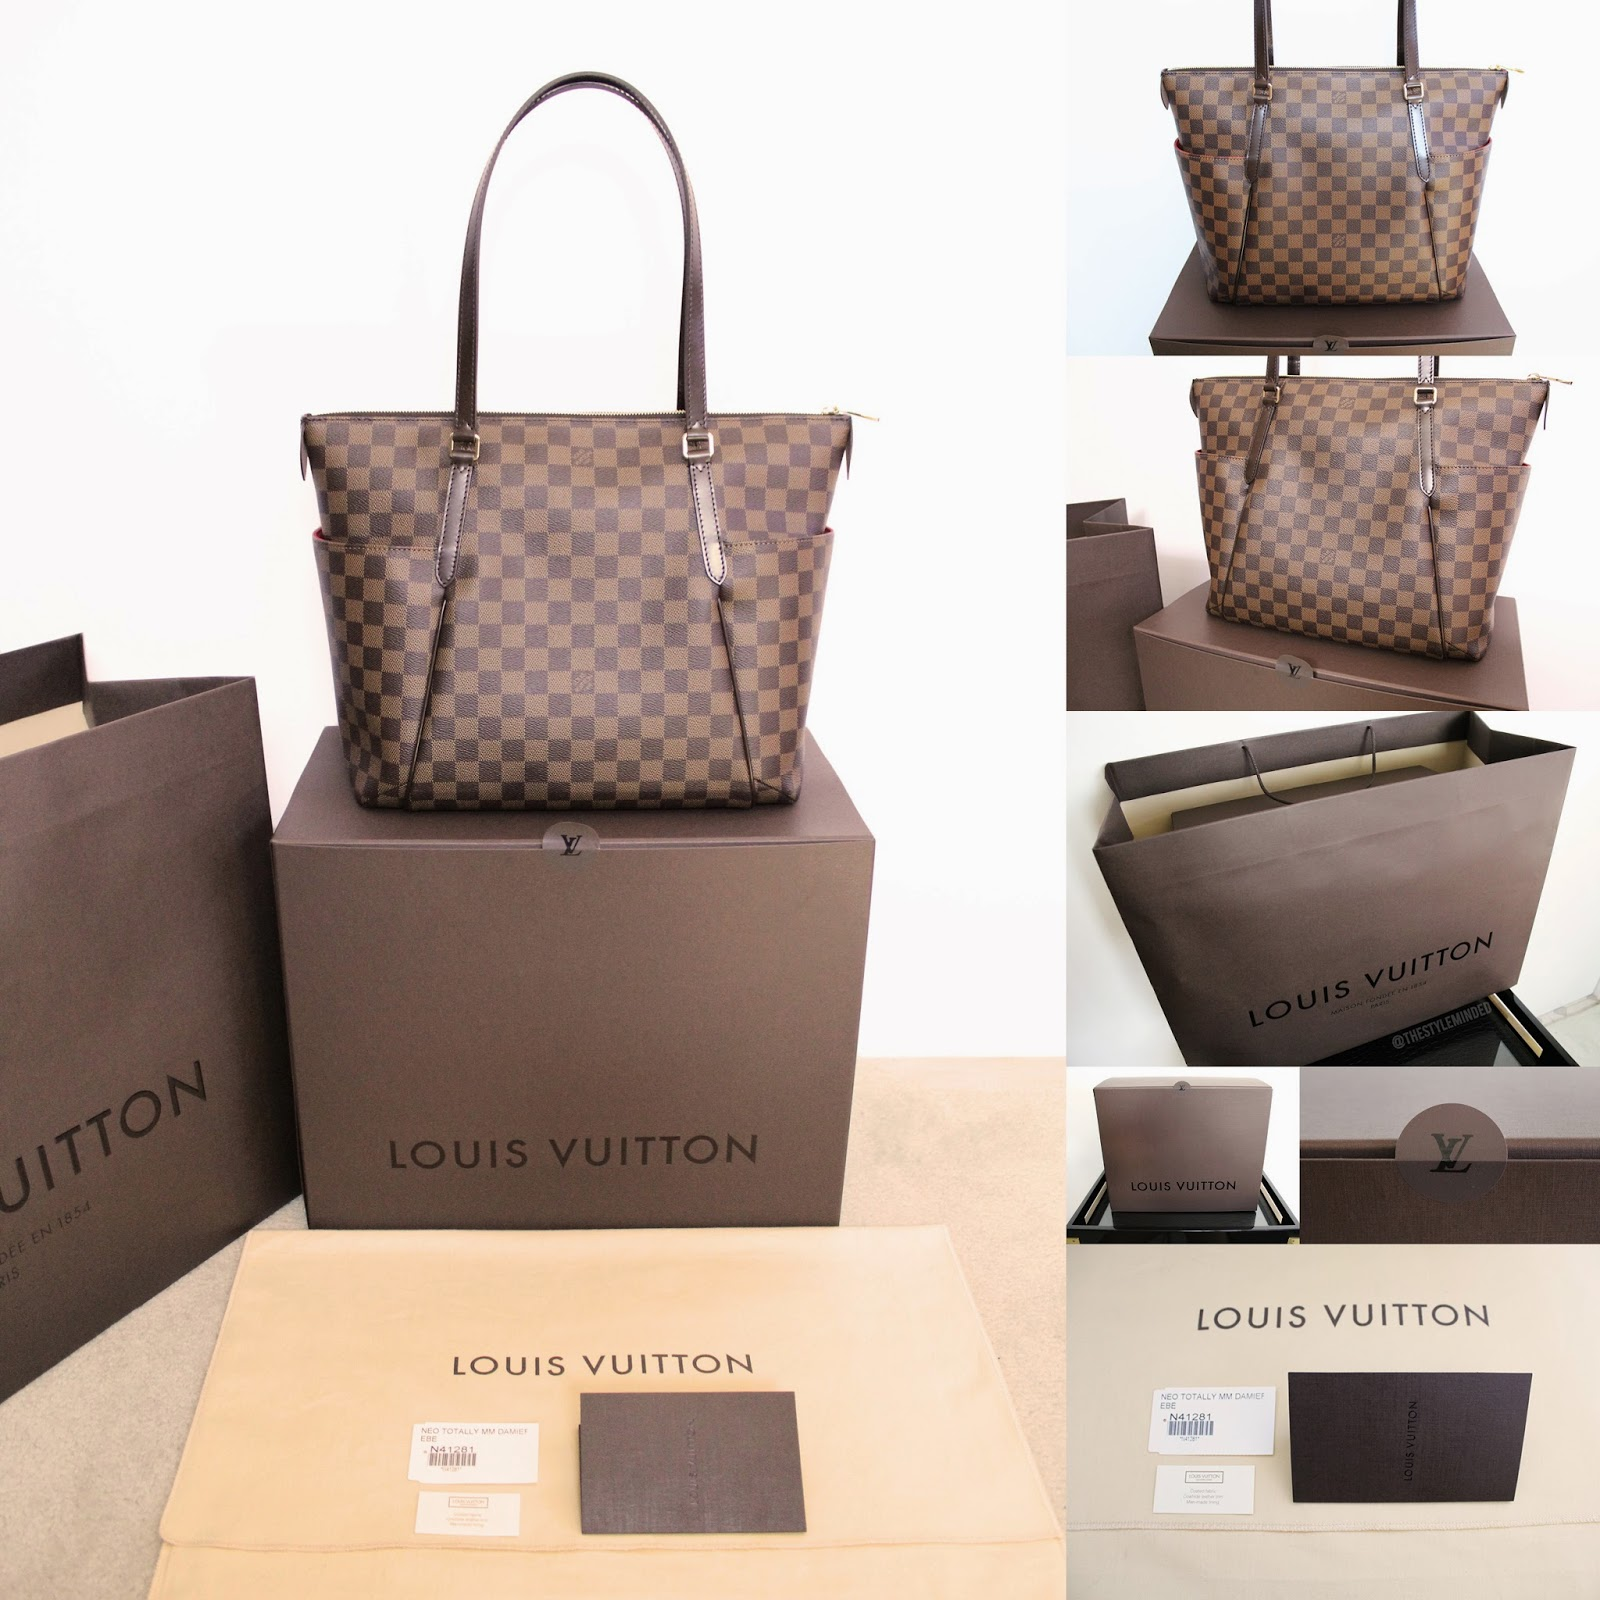 The Style Minded Louis Vuitton Totally Mm Damier Ebene First Impressions Pictures